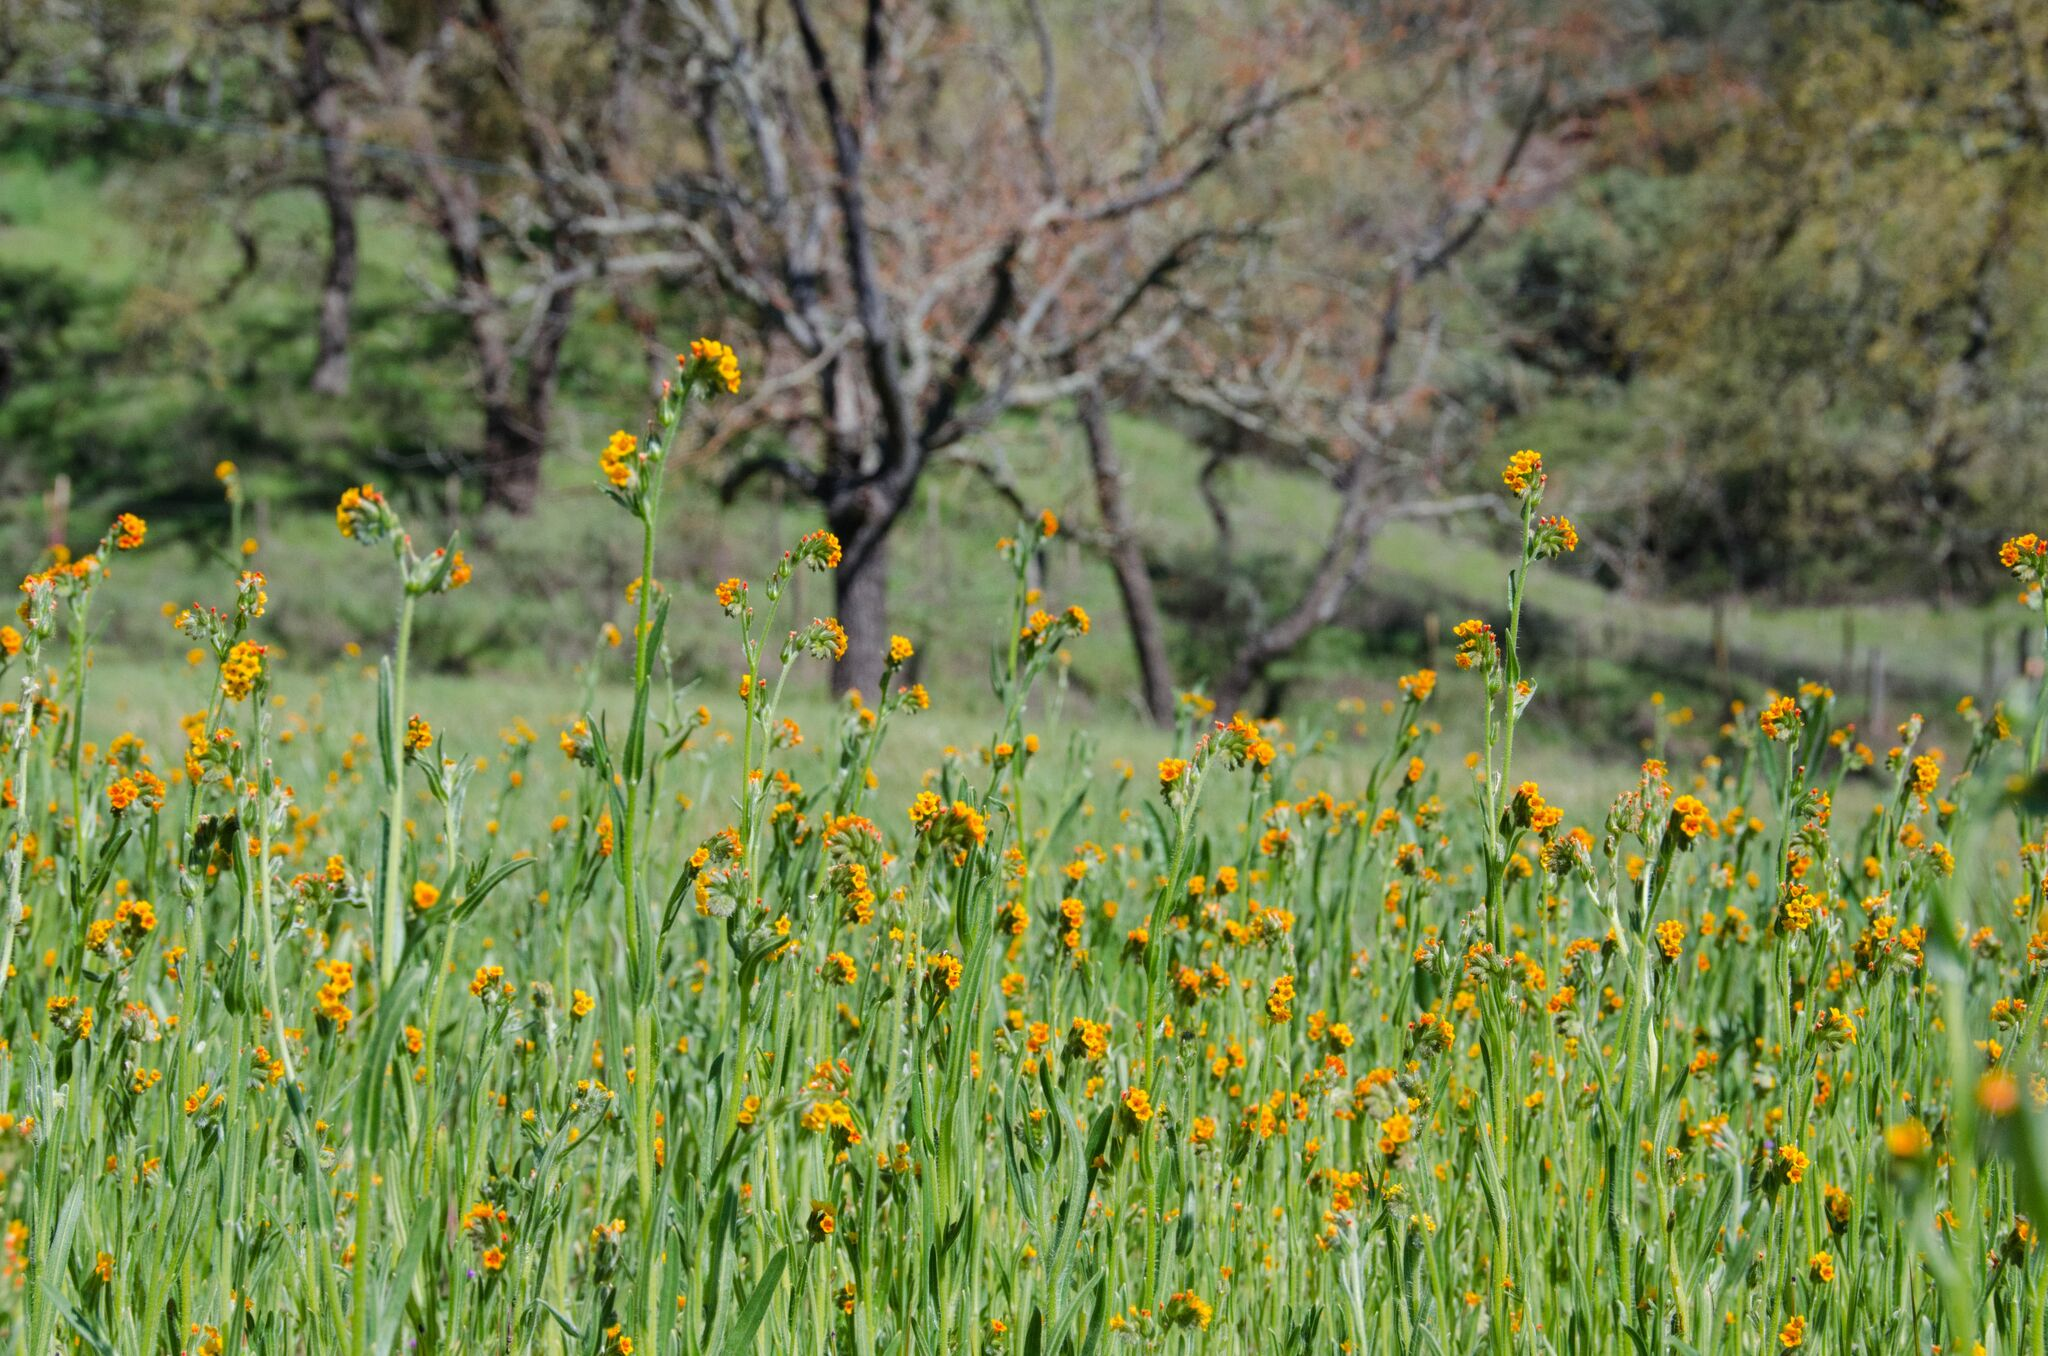 Llagas-Creek-Loop-Trail_Rancho-Canada-del-Oro-Open-Space-Preserve_Cassie-Kifer-11_preview